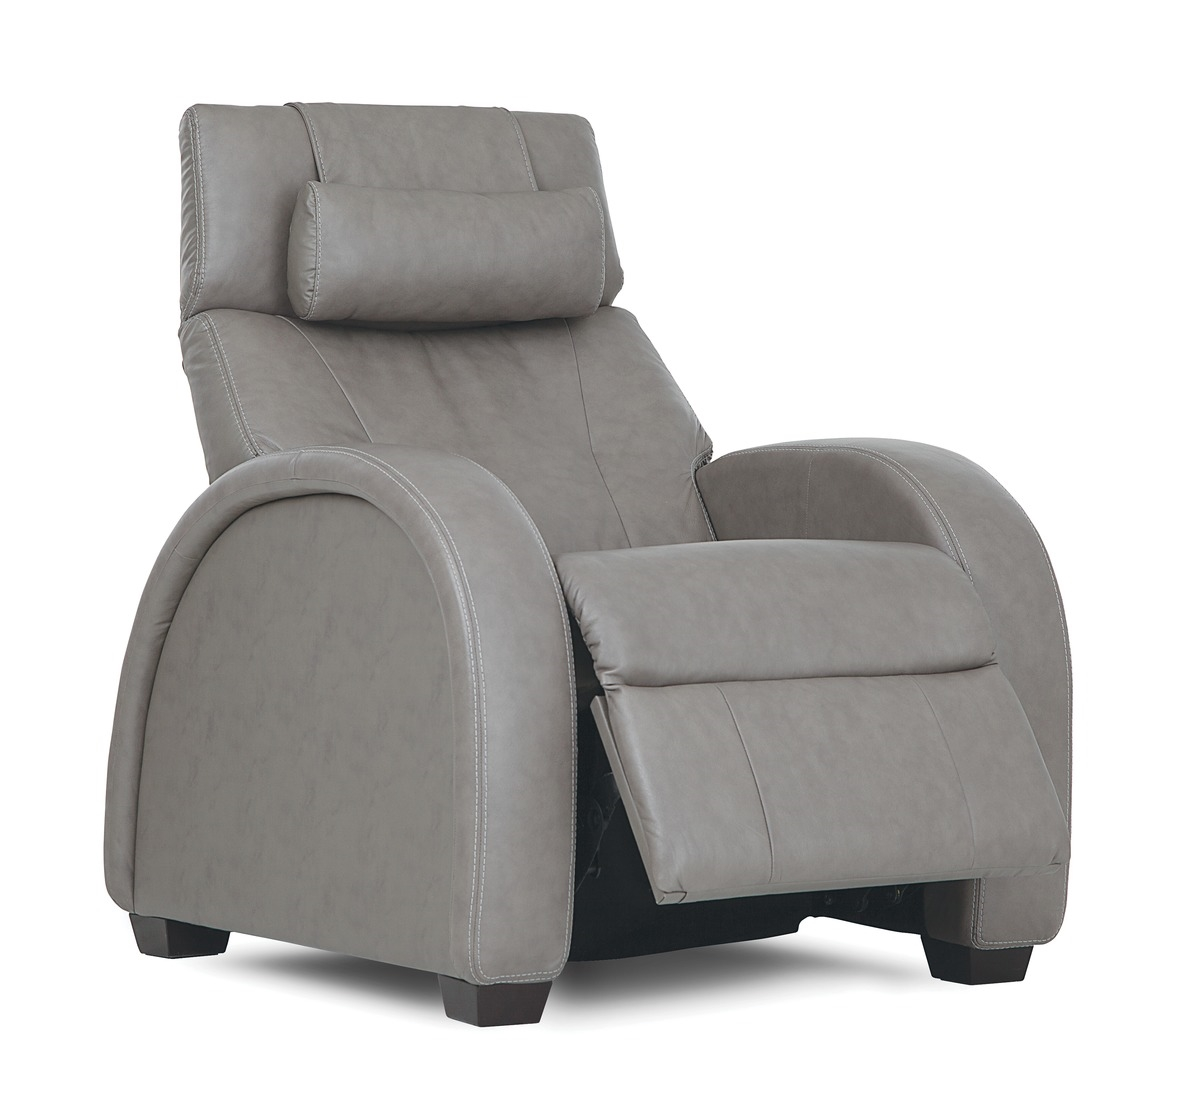 Electric Recliner Leather Chairs Zero Gravity